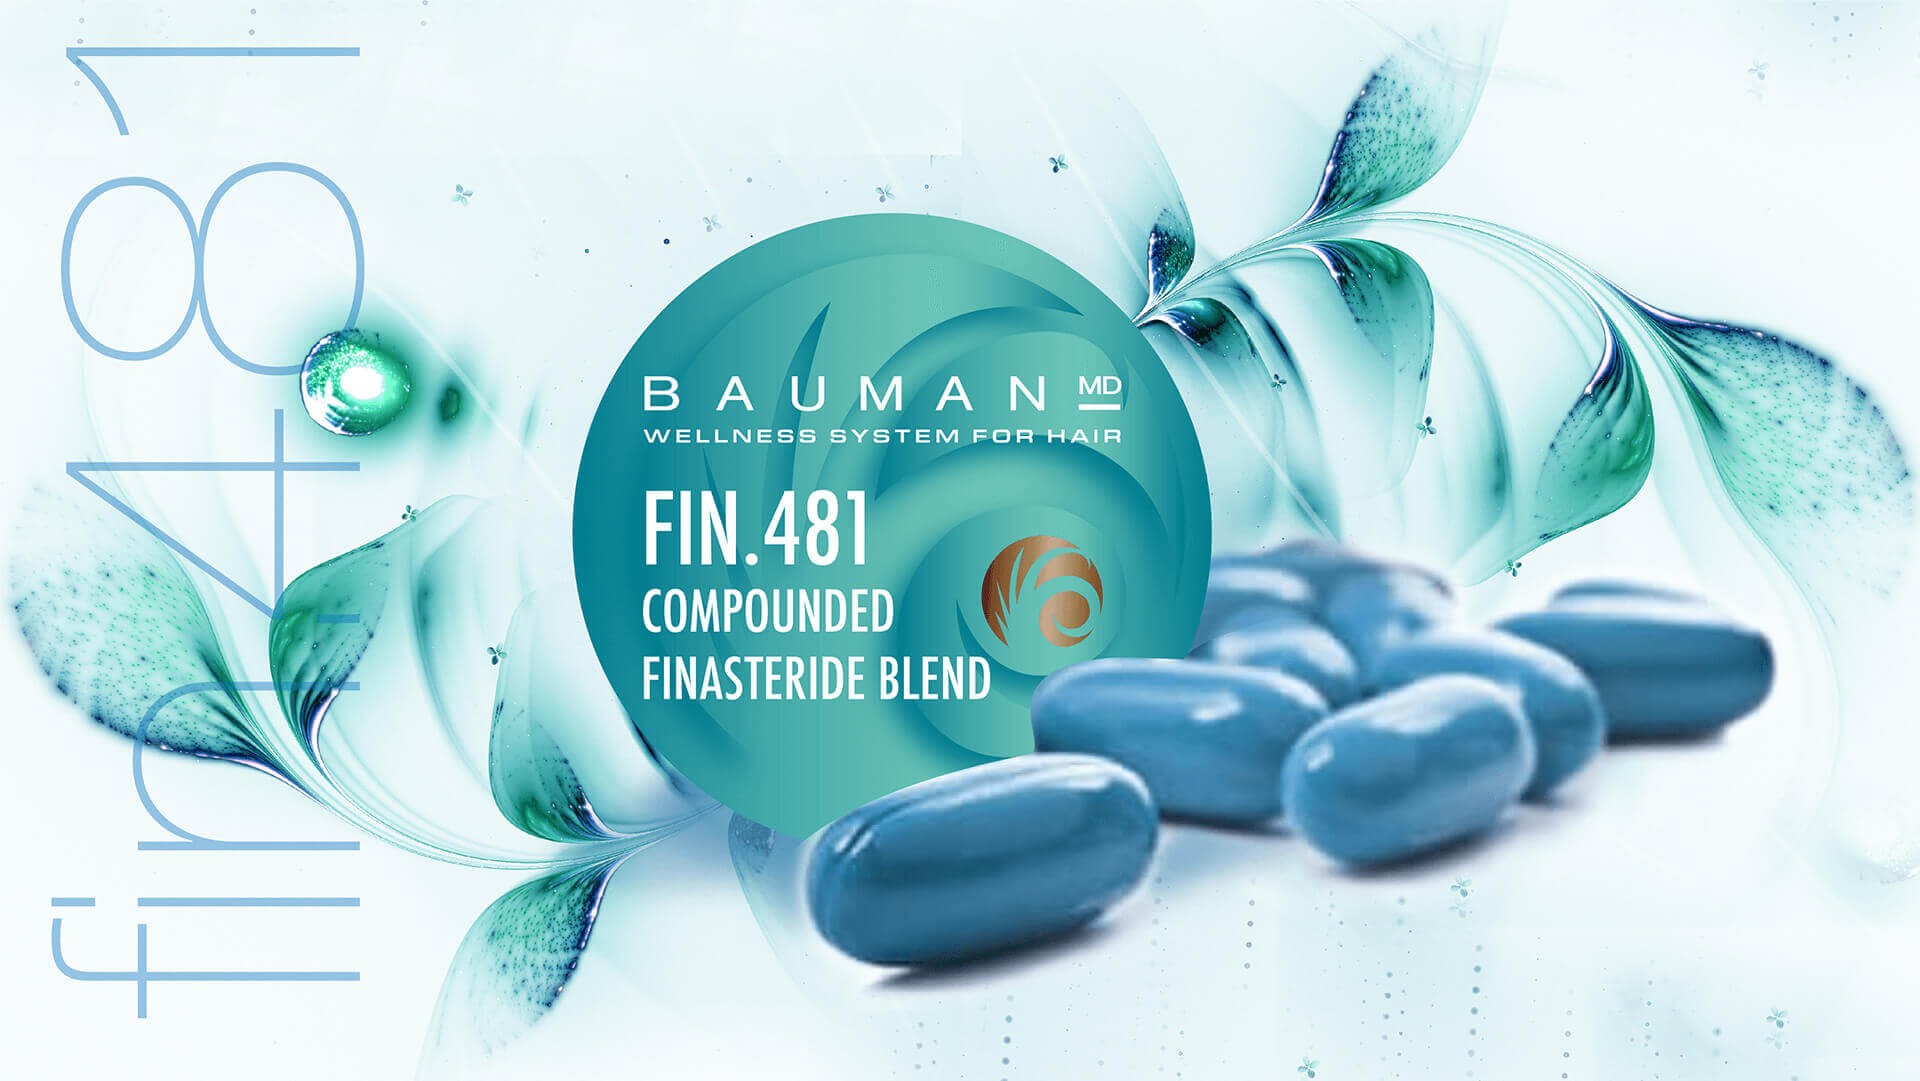 fin 481 product Compounded Finasteride: Fin.481